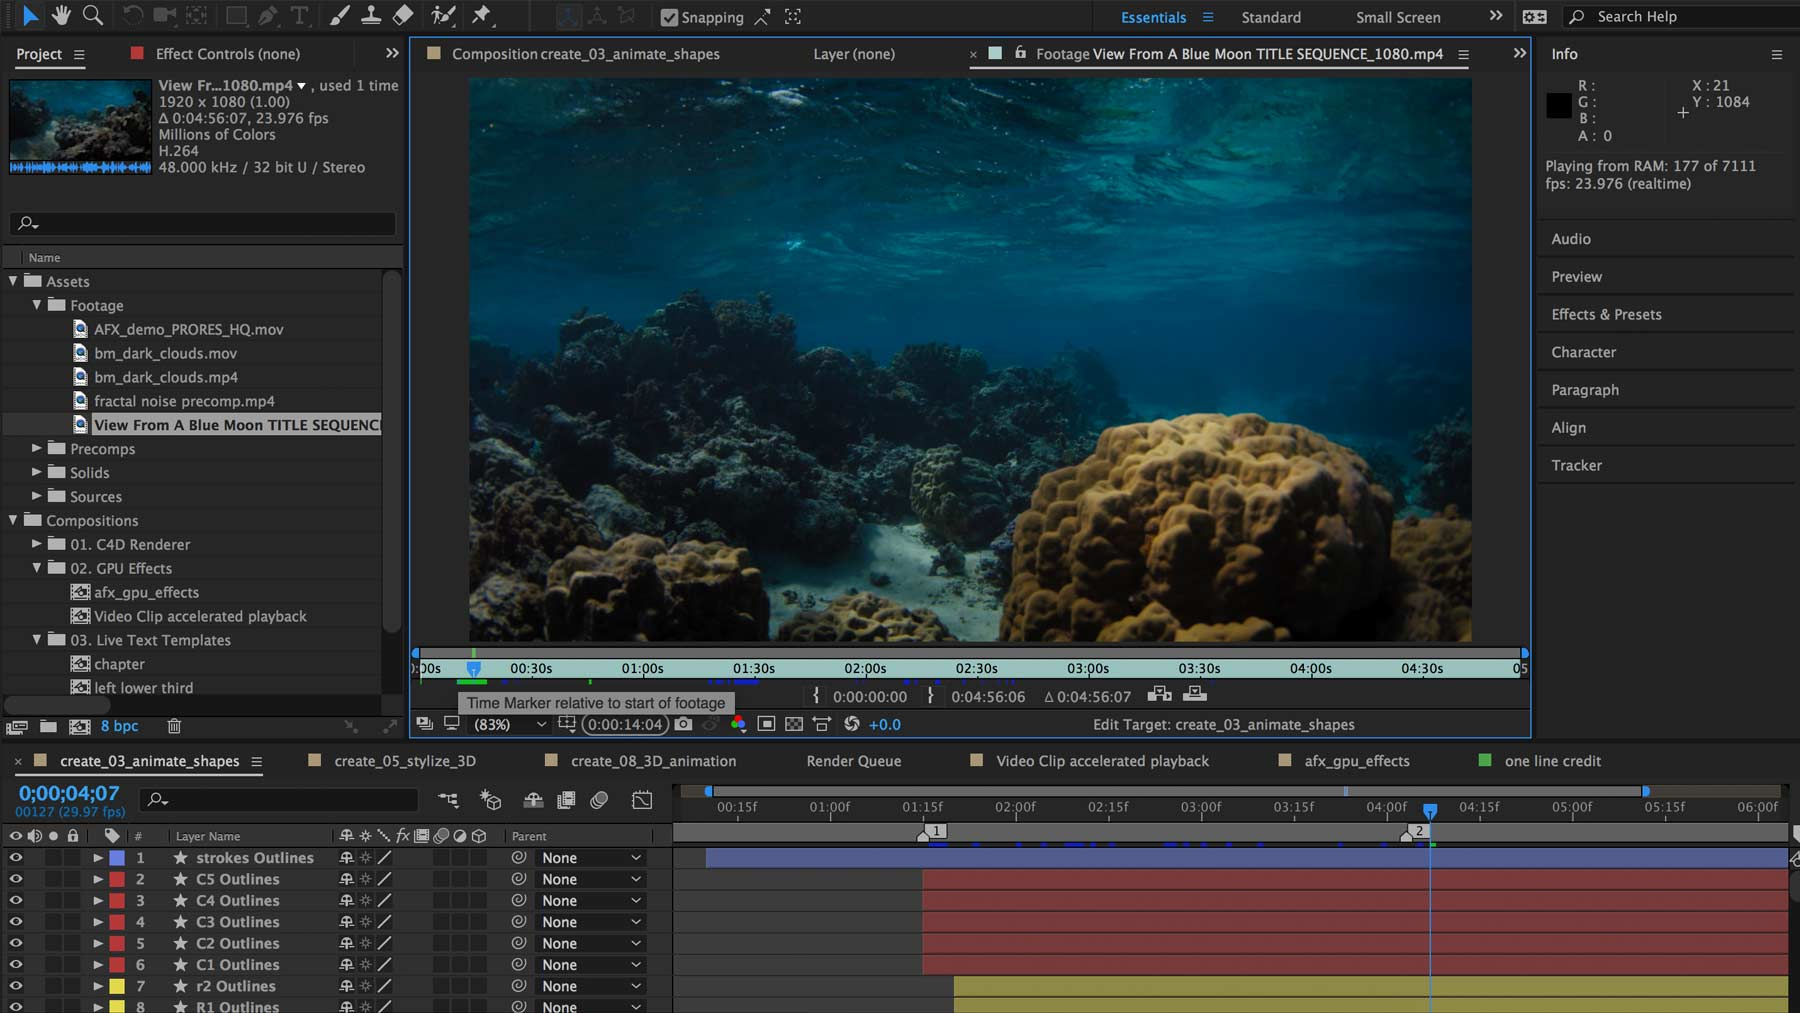 Adobe After Effects CC 2017 ocean editing